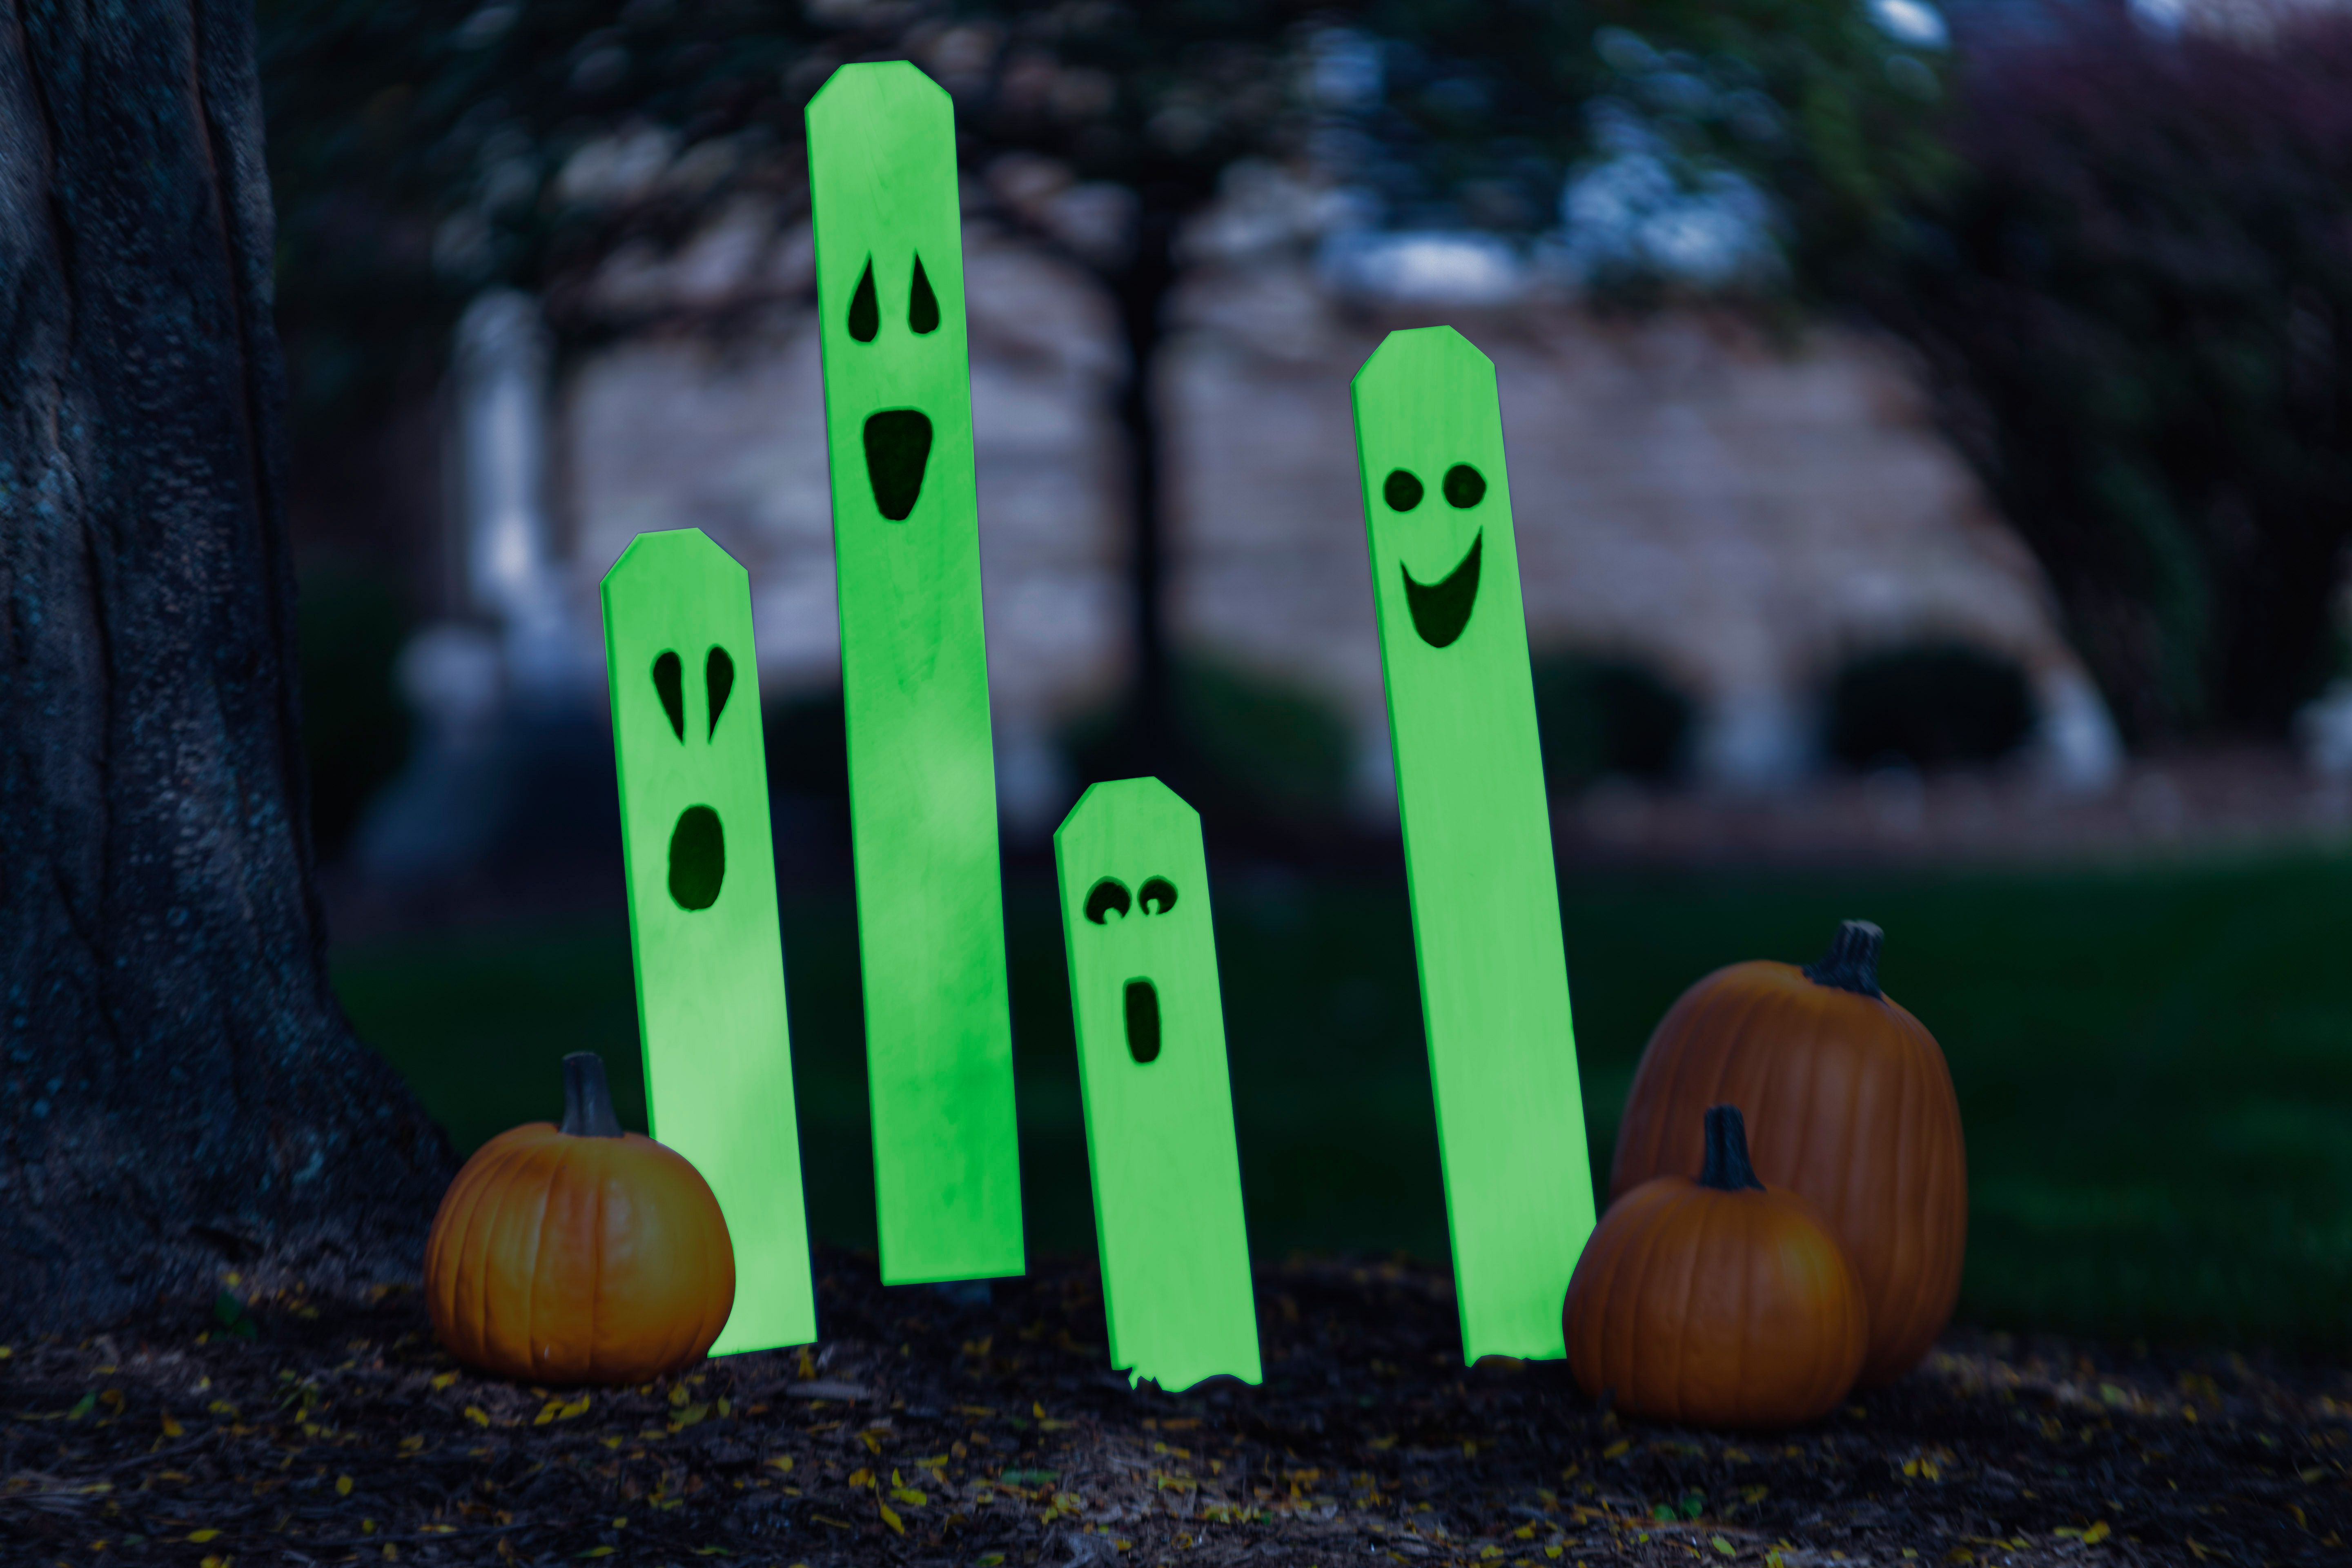 Front yard Halloween decorating made simple thanks to Rust-Oleum - glow in the dark halloween decorations